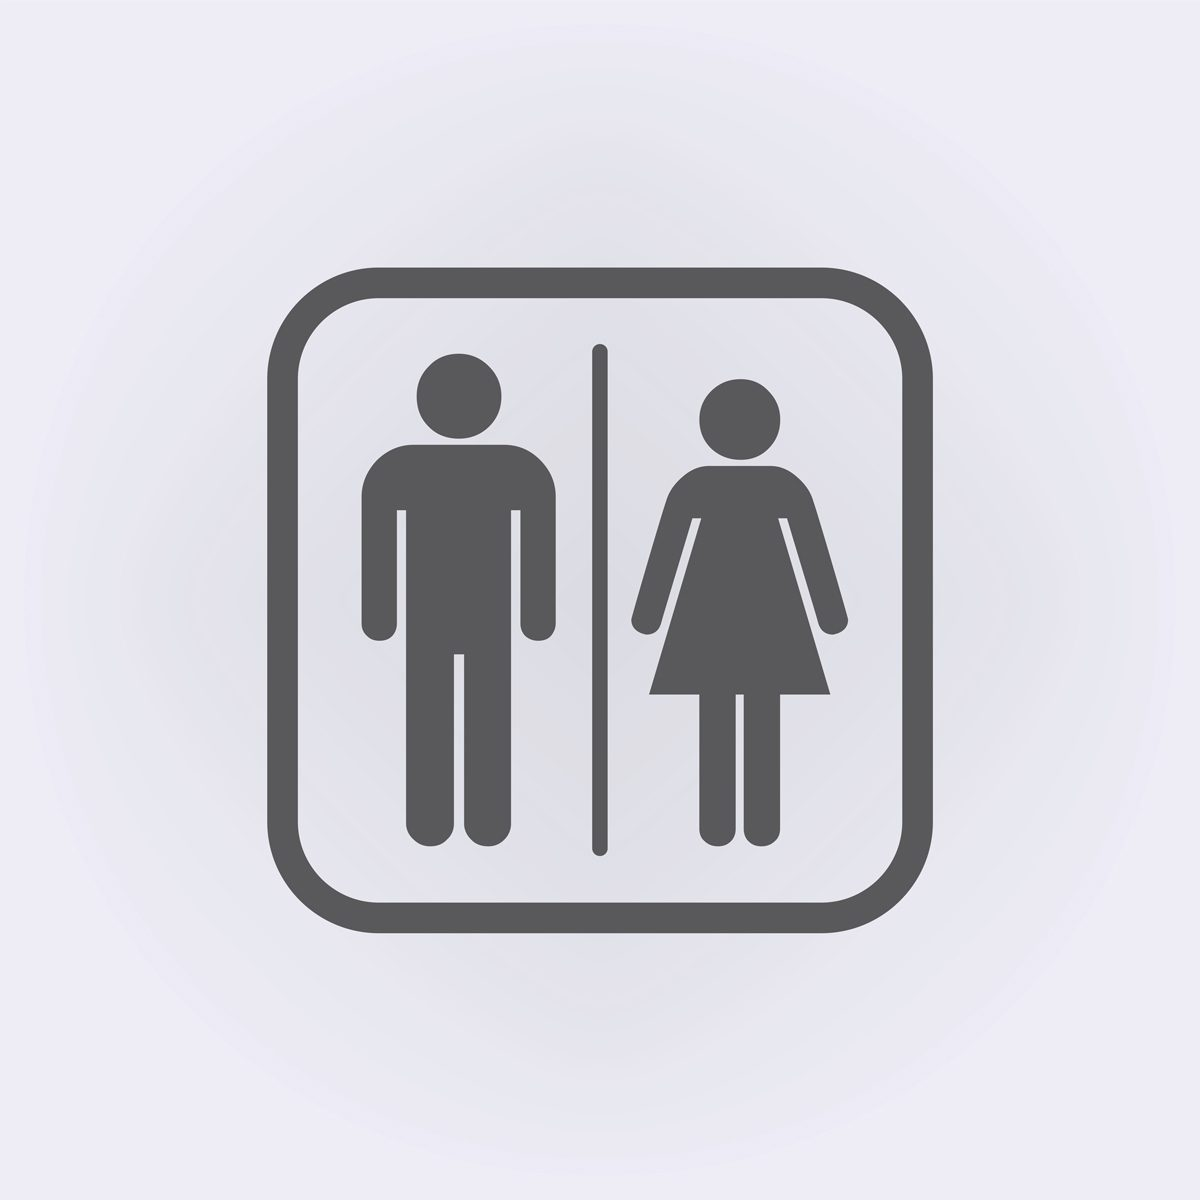 bathroom habits: the difference between men and women